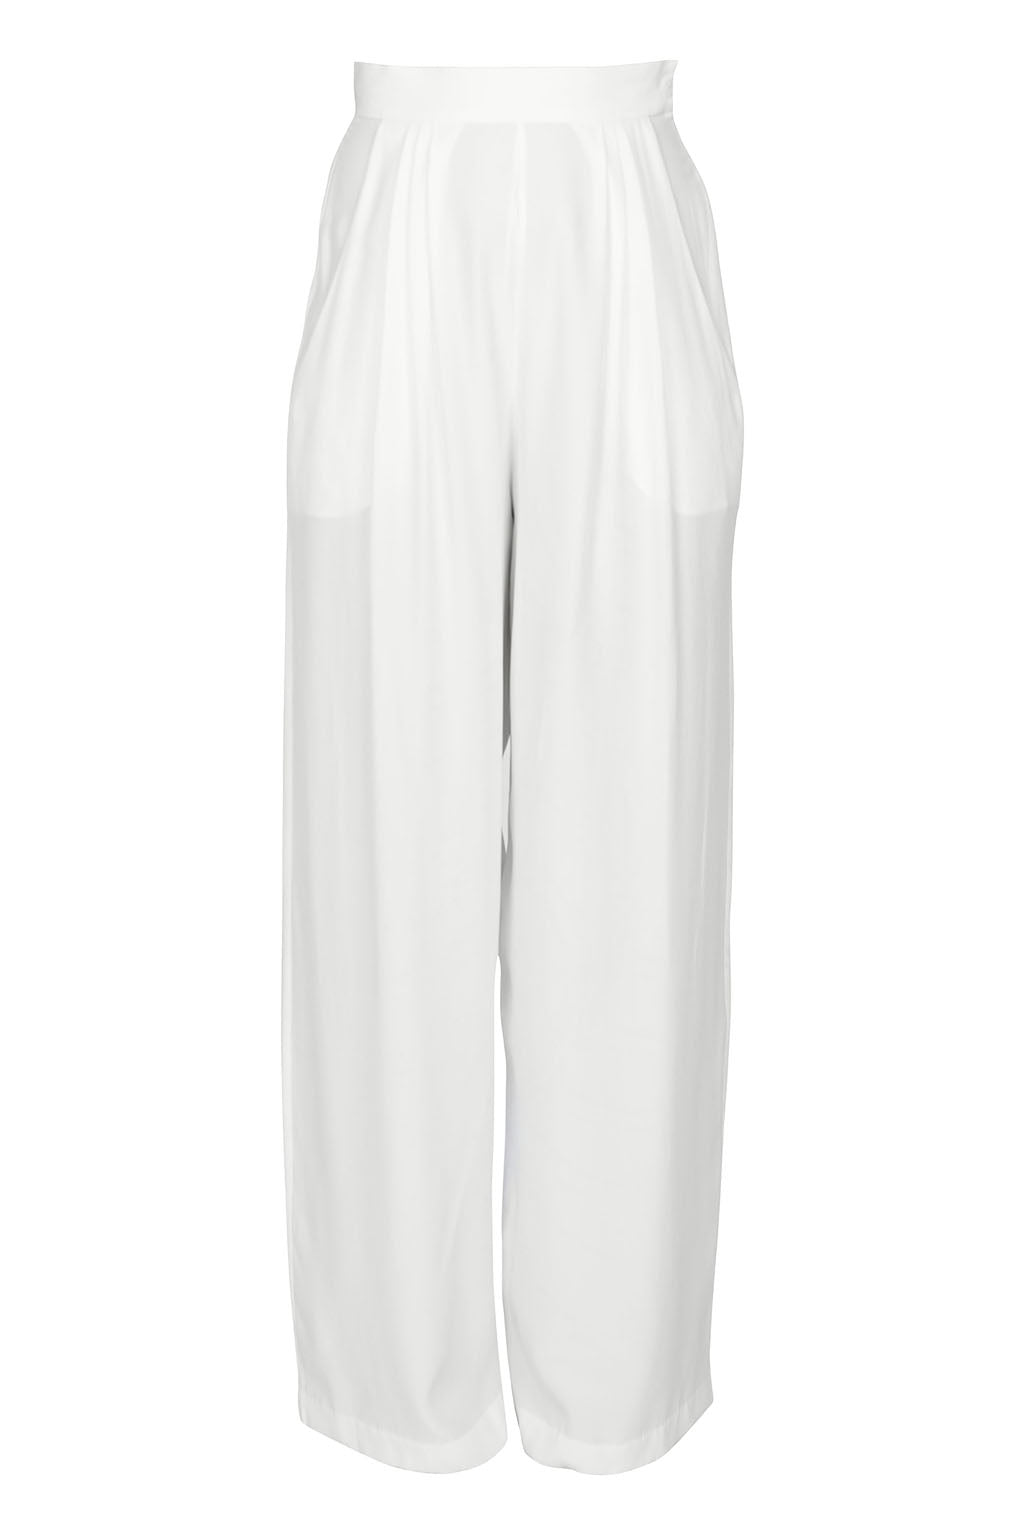 Light Trouser ghost mannequin front